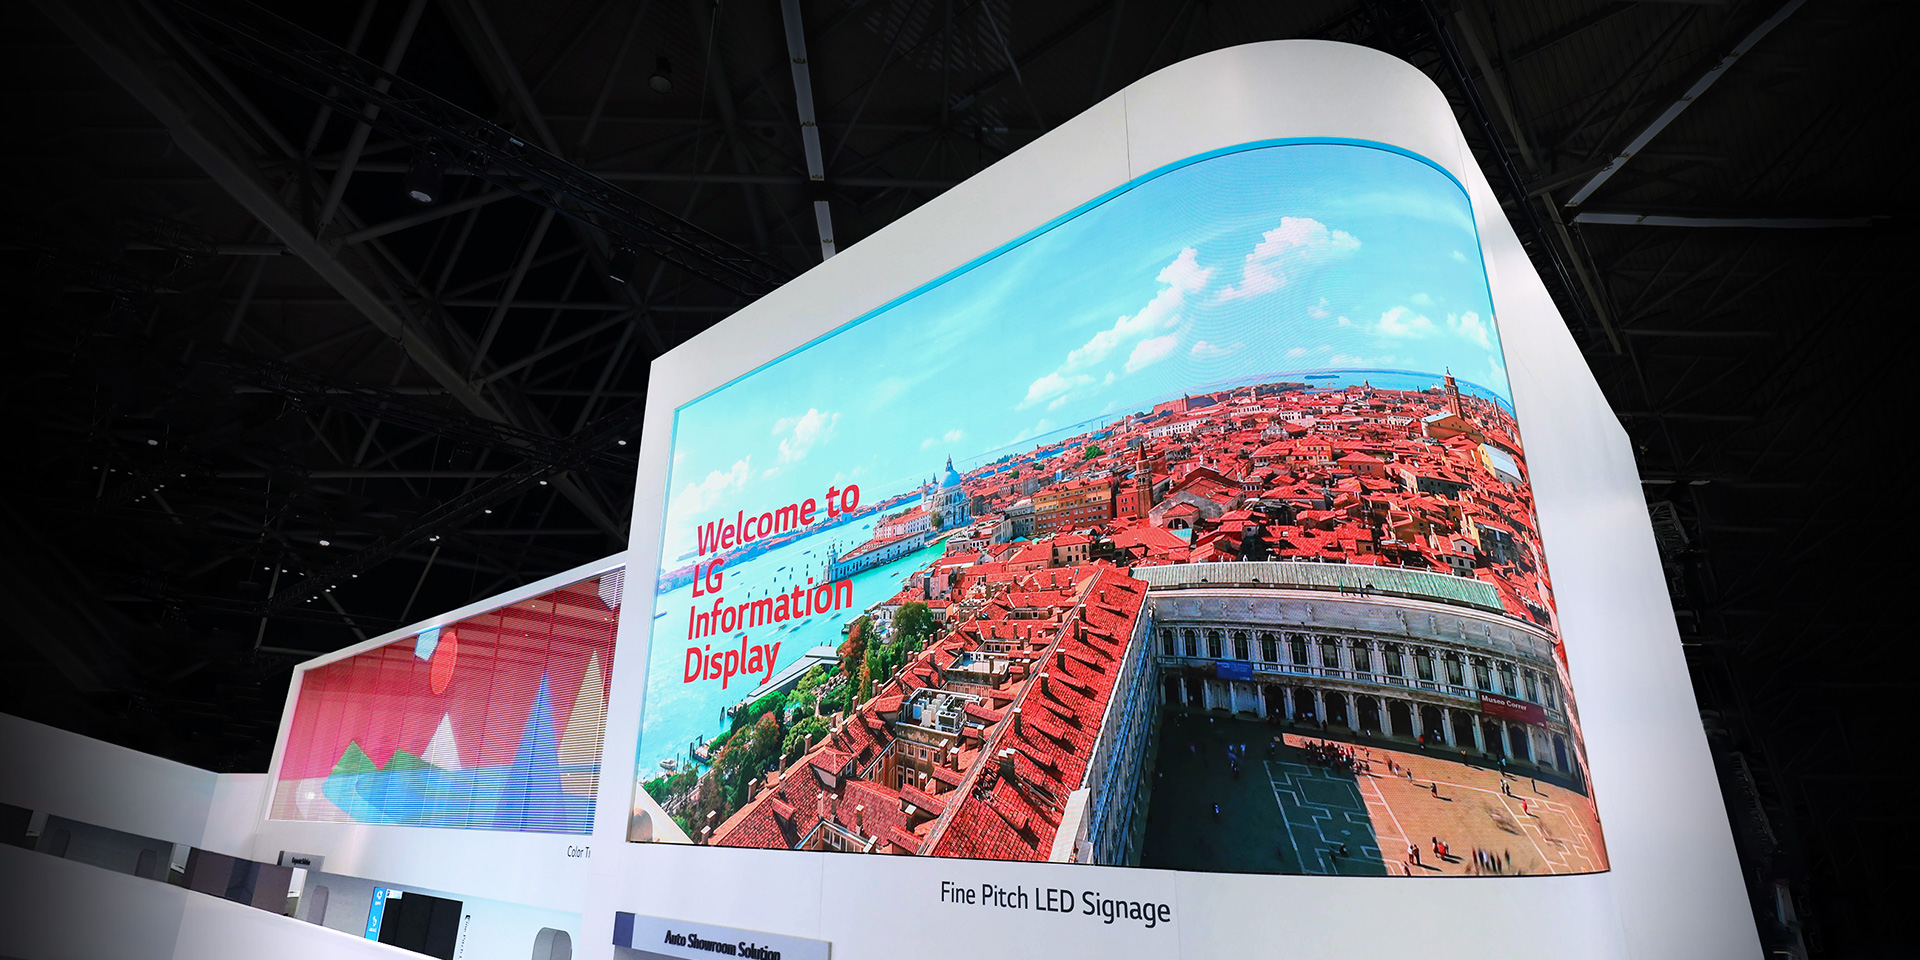 LG's Curved Fine Pitch LED Signage displayed at ISE 2019.